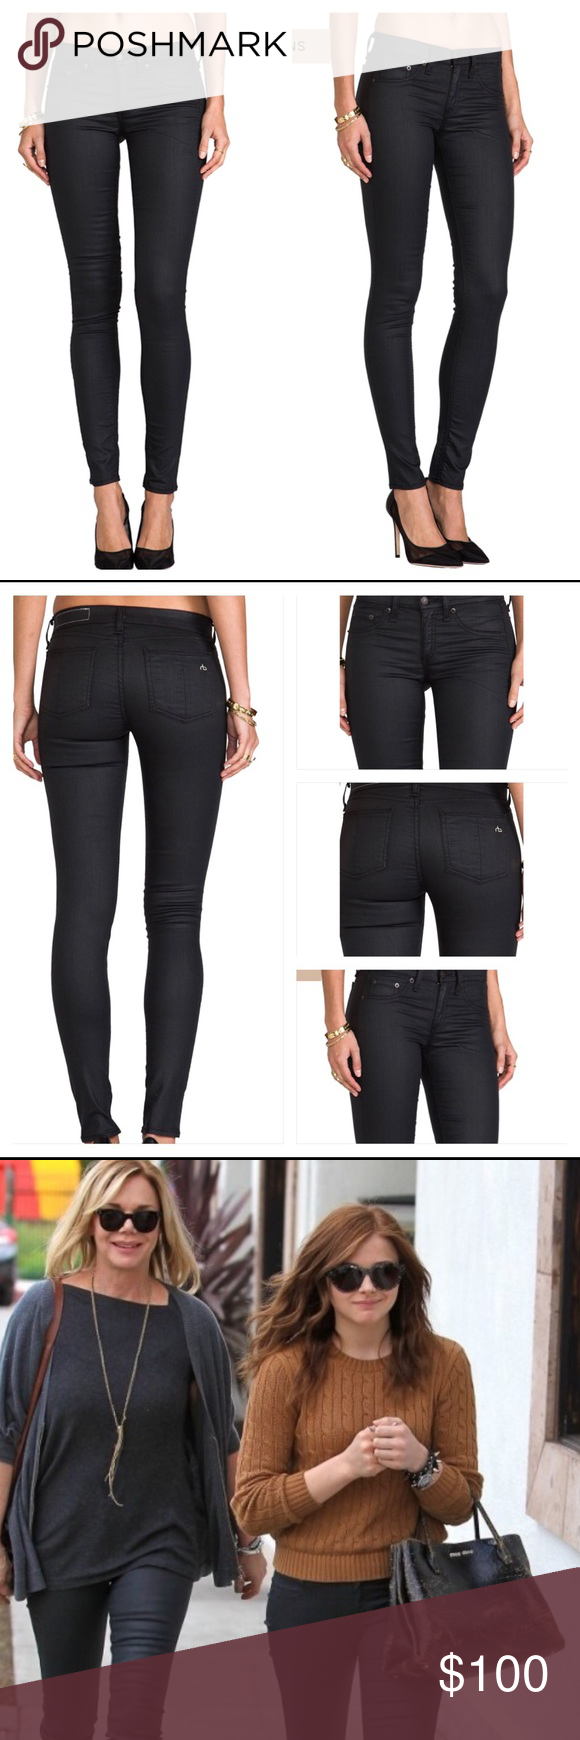 Rag & Bone Shoreditch Leggings Jeans (With Images)